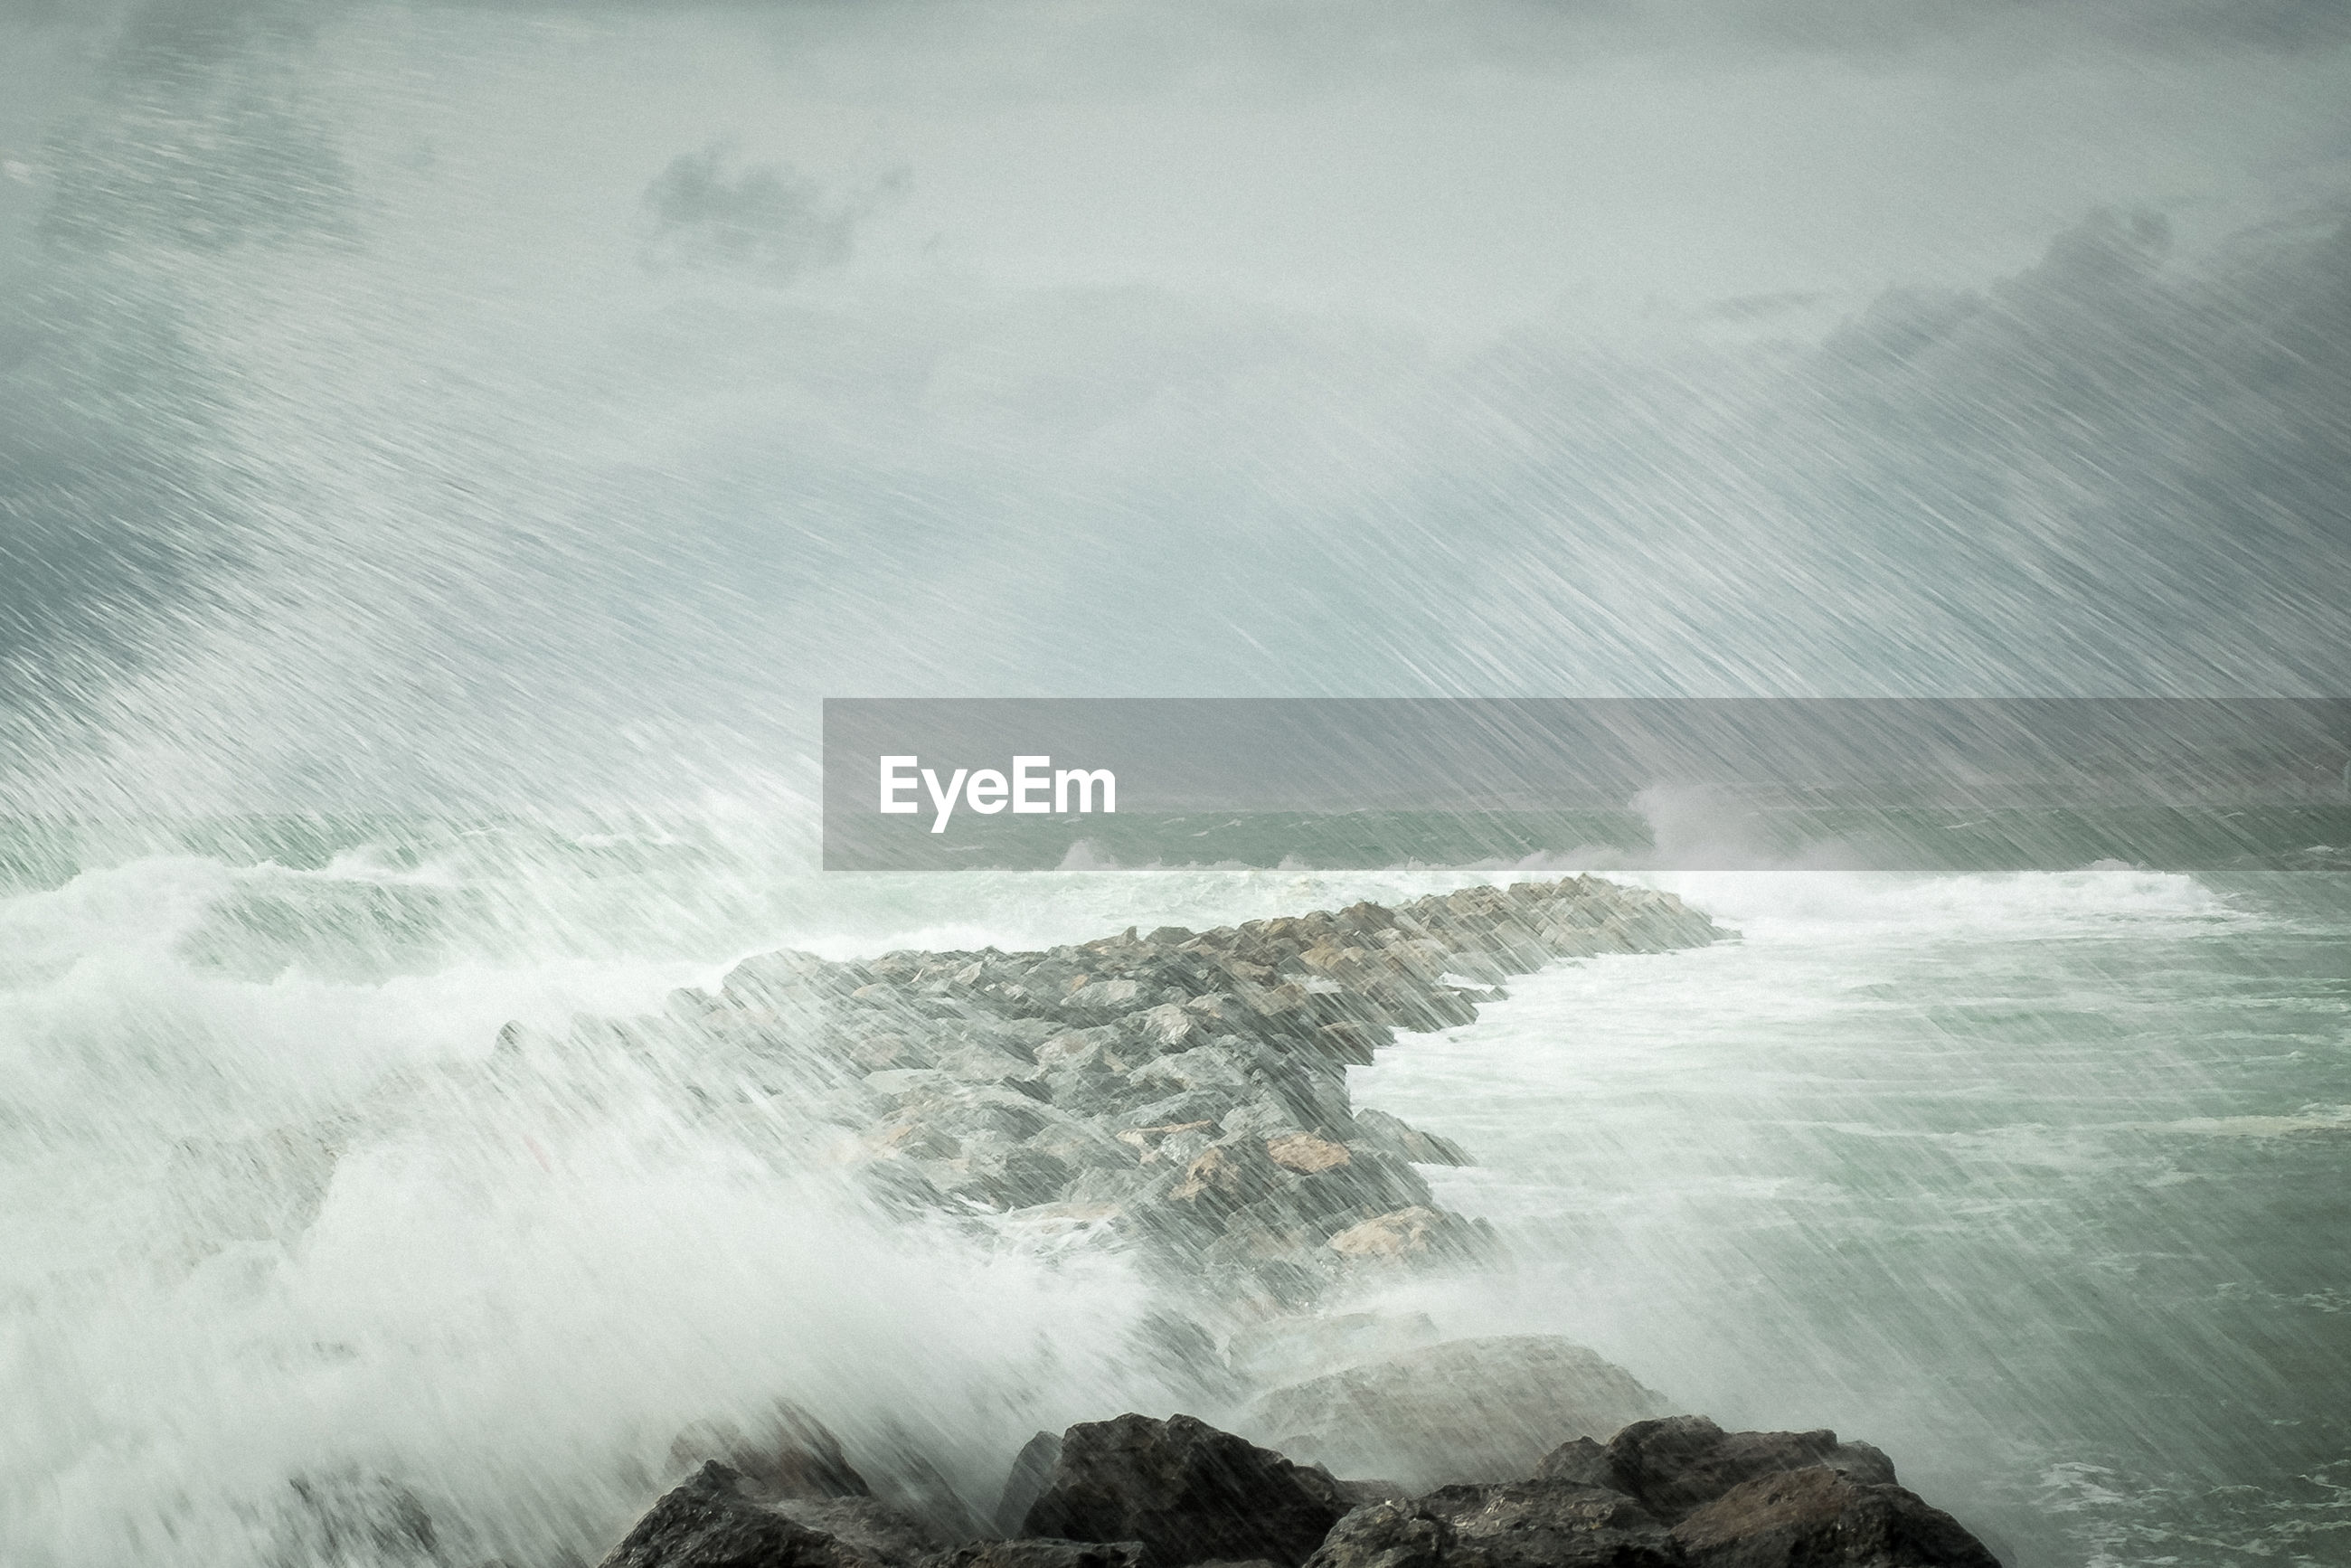 SCENIC VIEW OF WAVES BREAKING ON ROCKS